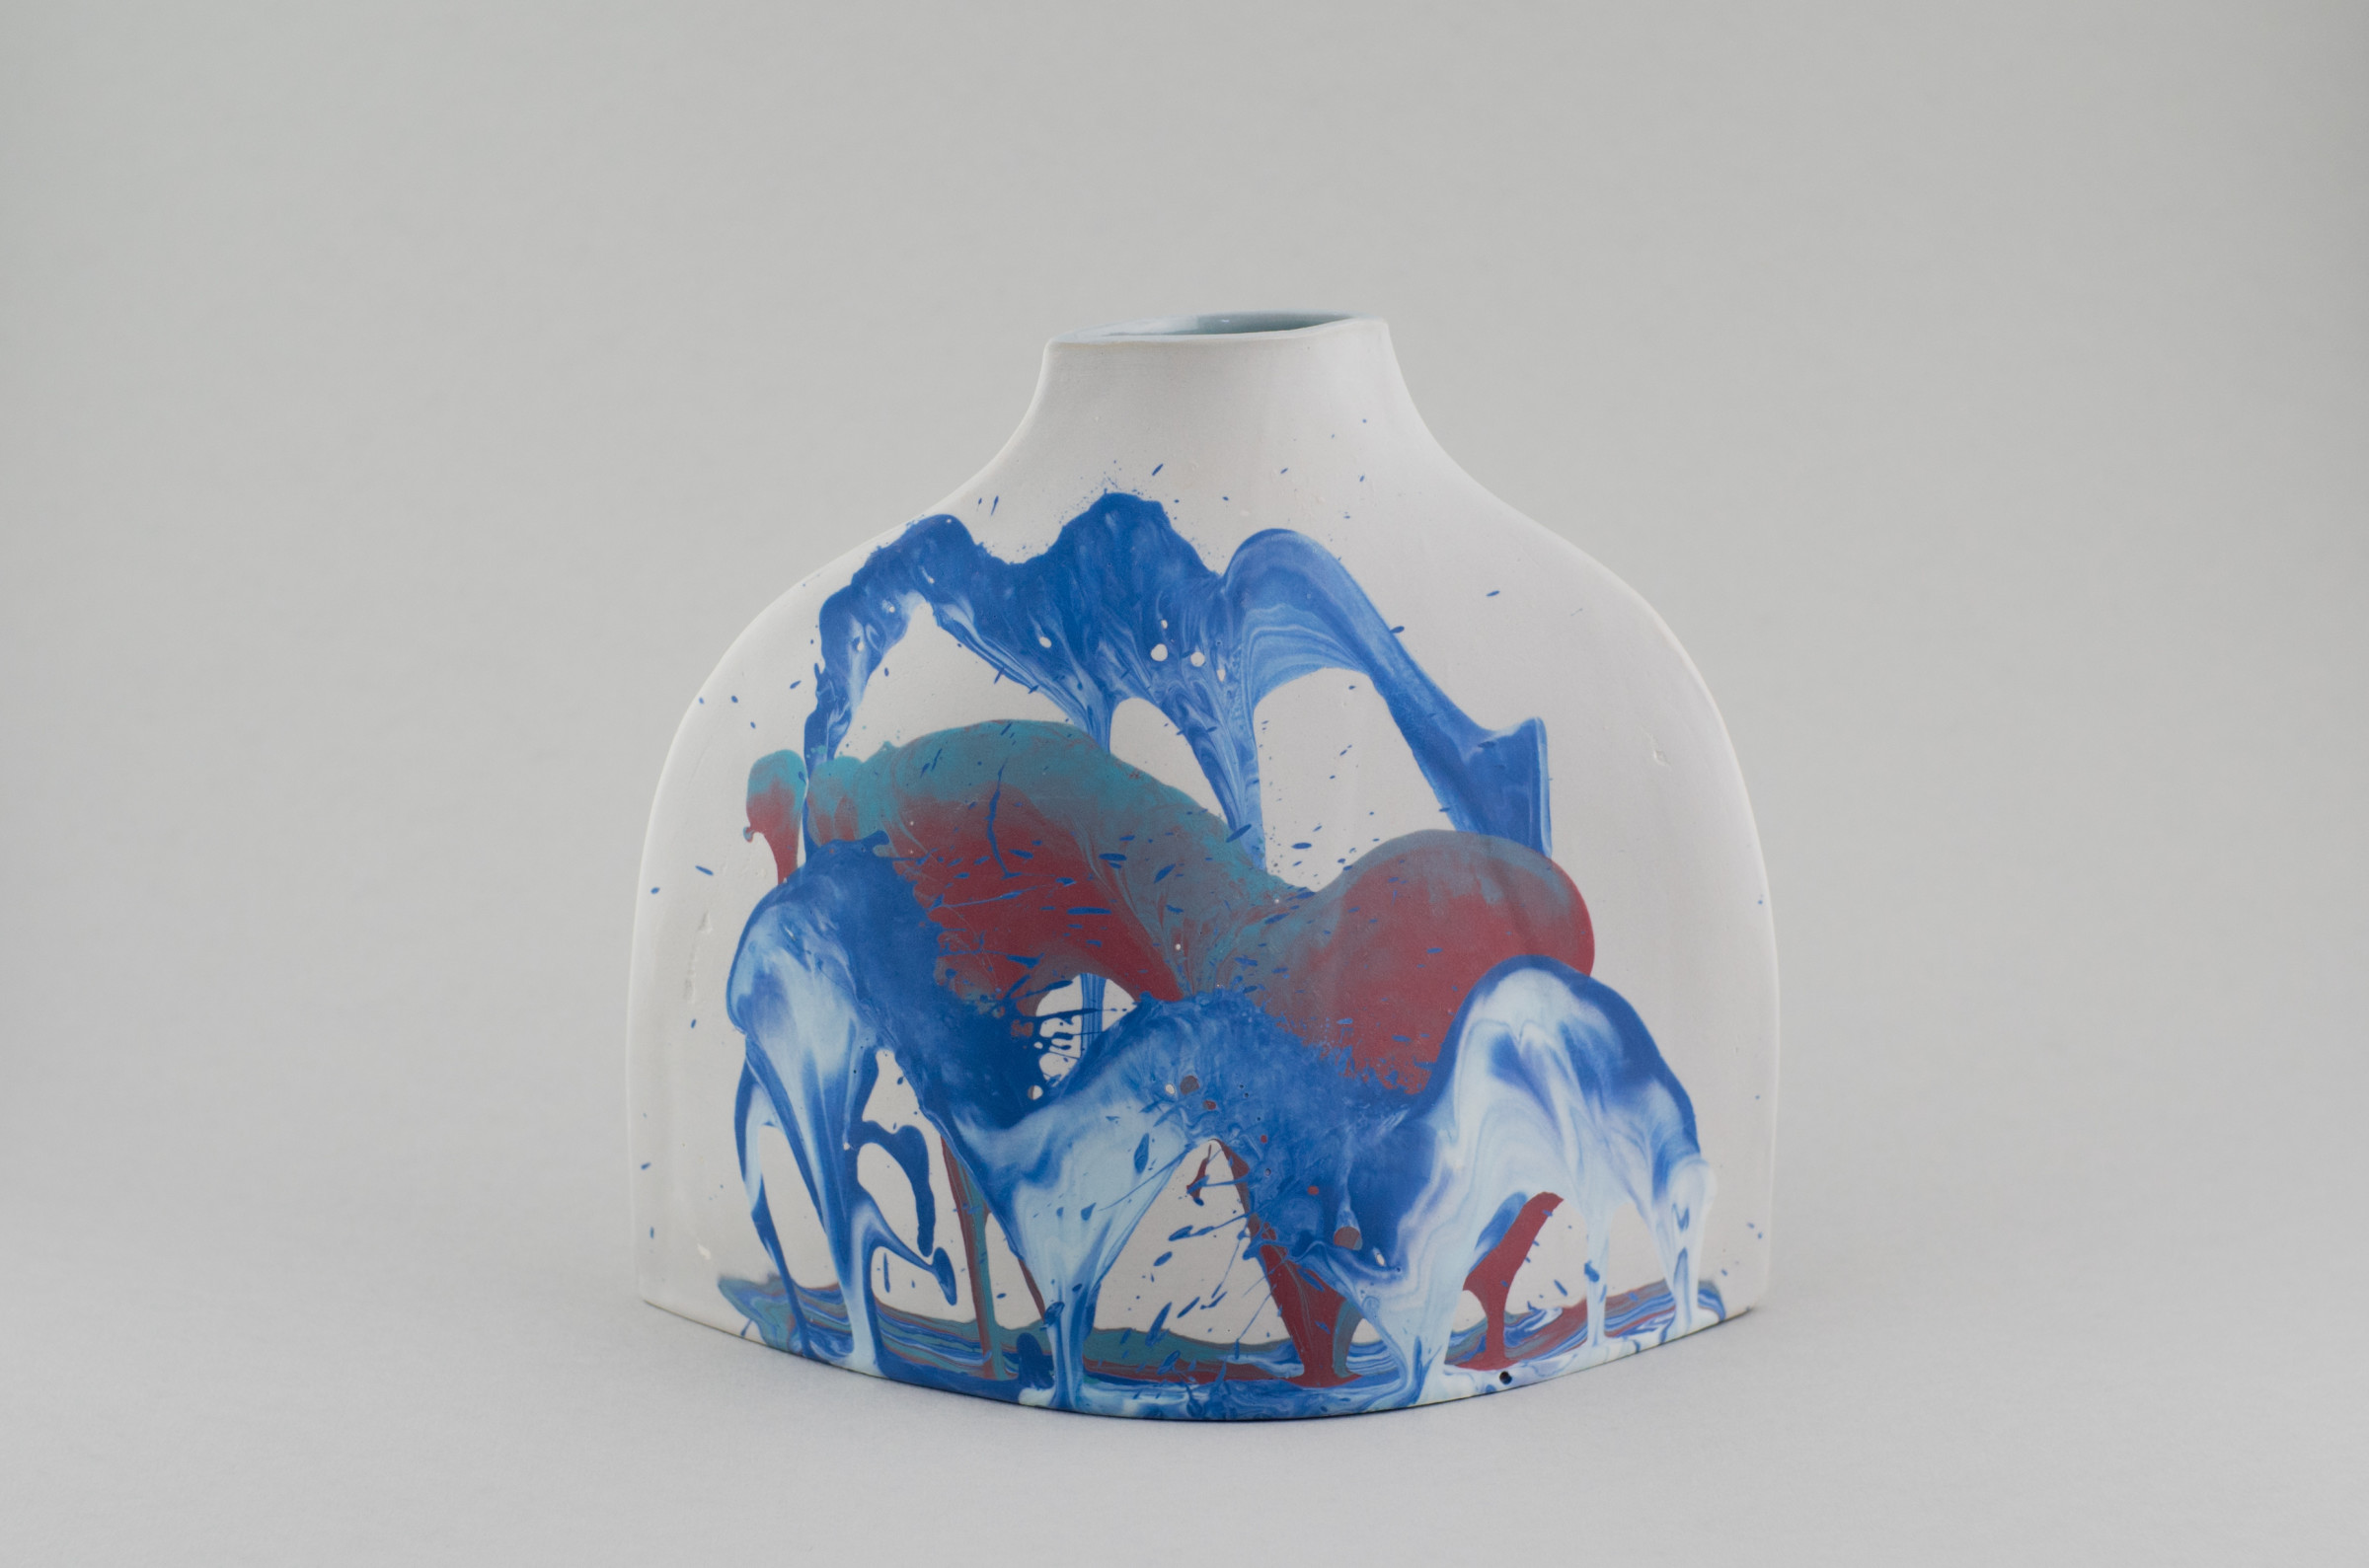 "<span class=""link fancybox-details-link""><a href=""/artists/219-james-pegg/works/6785-james-pegg-shoulder-vase-2019/"">View Detail Page</a></span><div class=""artist""><strong>James Pegg</strong></div> <div class=""title""><em>Shoulder Vase</em>, 2019</div> <div class=""medium"">action-cast stained porcelain with glazed interior <br />  (in collaboration with Lucia Fraser)</div> <div class=""dimensions"">h 20 cm x w 17.5 cm</div><div class=""price"">£205.00</div><div class=""copyright_line"">OwnArt: £ 20.50 x 10 Months, 0% APR </div>"